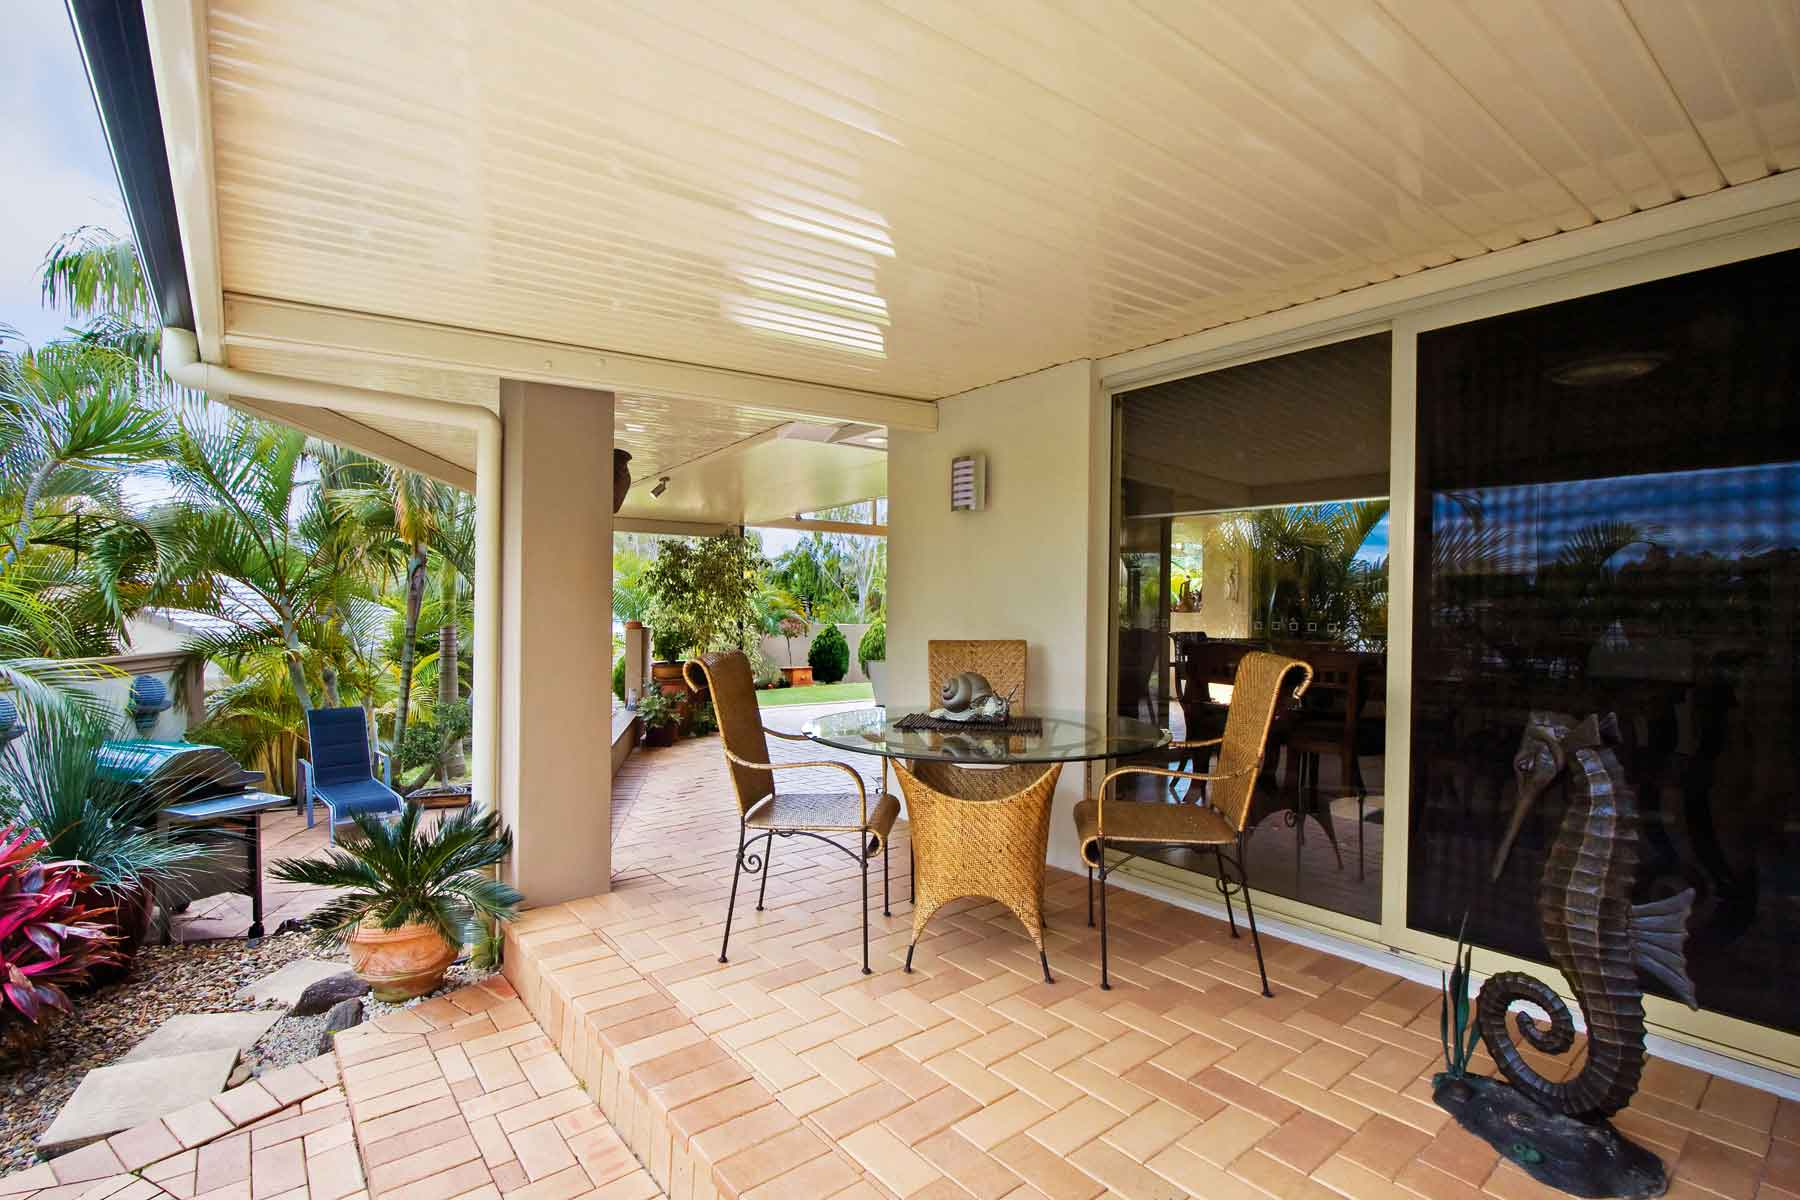 , Stratco Verandahs: Adding Value to Your Property